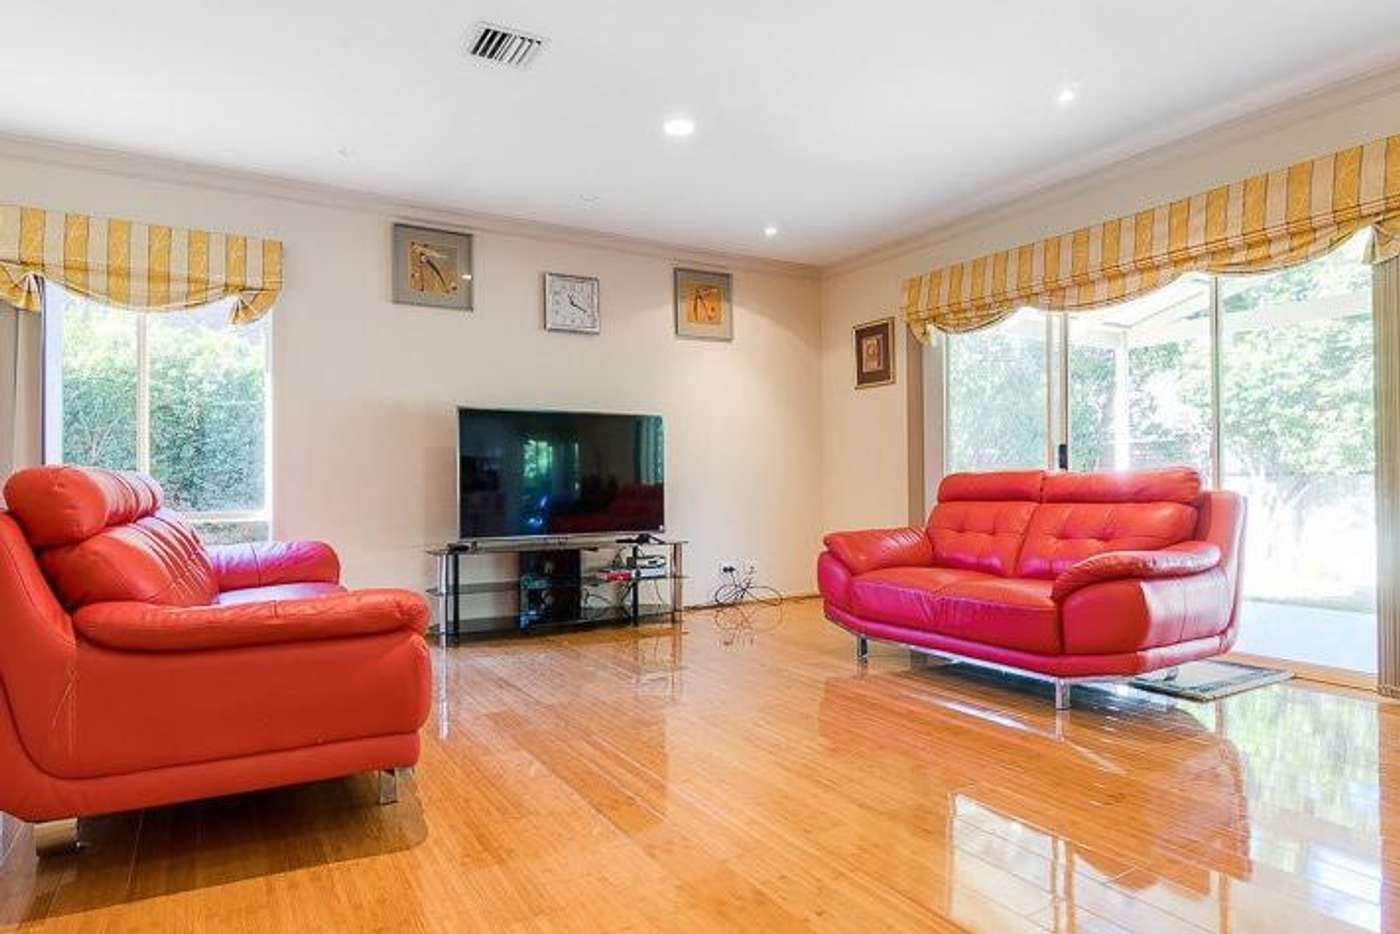 Sixth view of Homely house listing, 301 Hogans Road, Hoppers Crossing VIC 3029